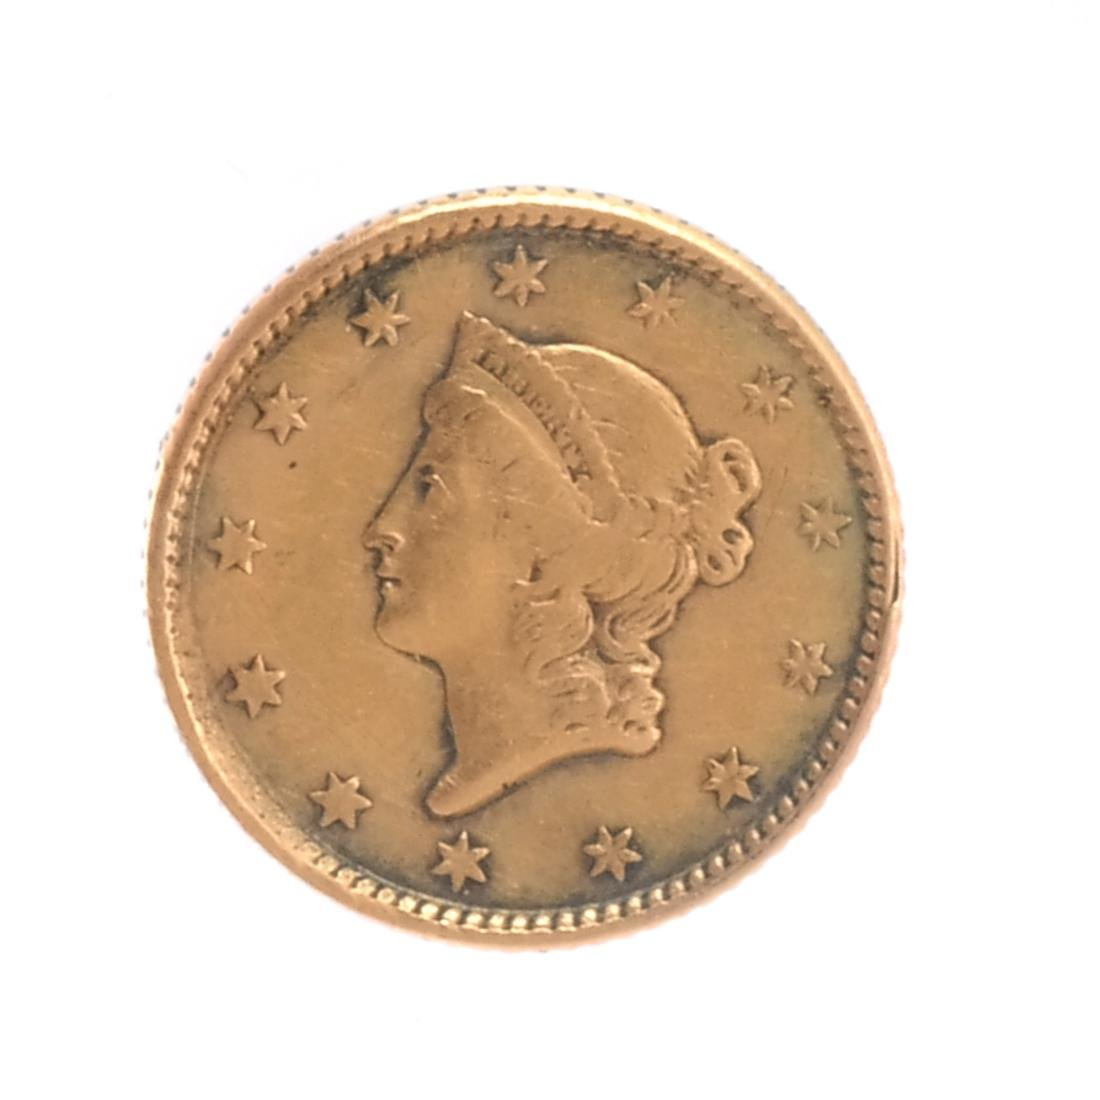 1851 $1 Gold Liberty Head Coin VF